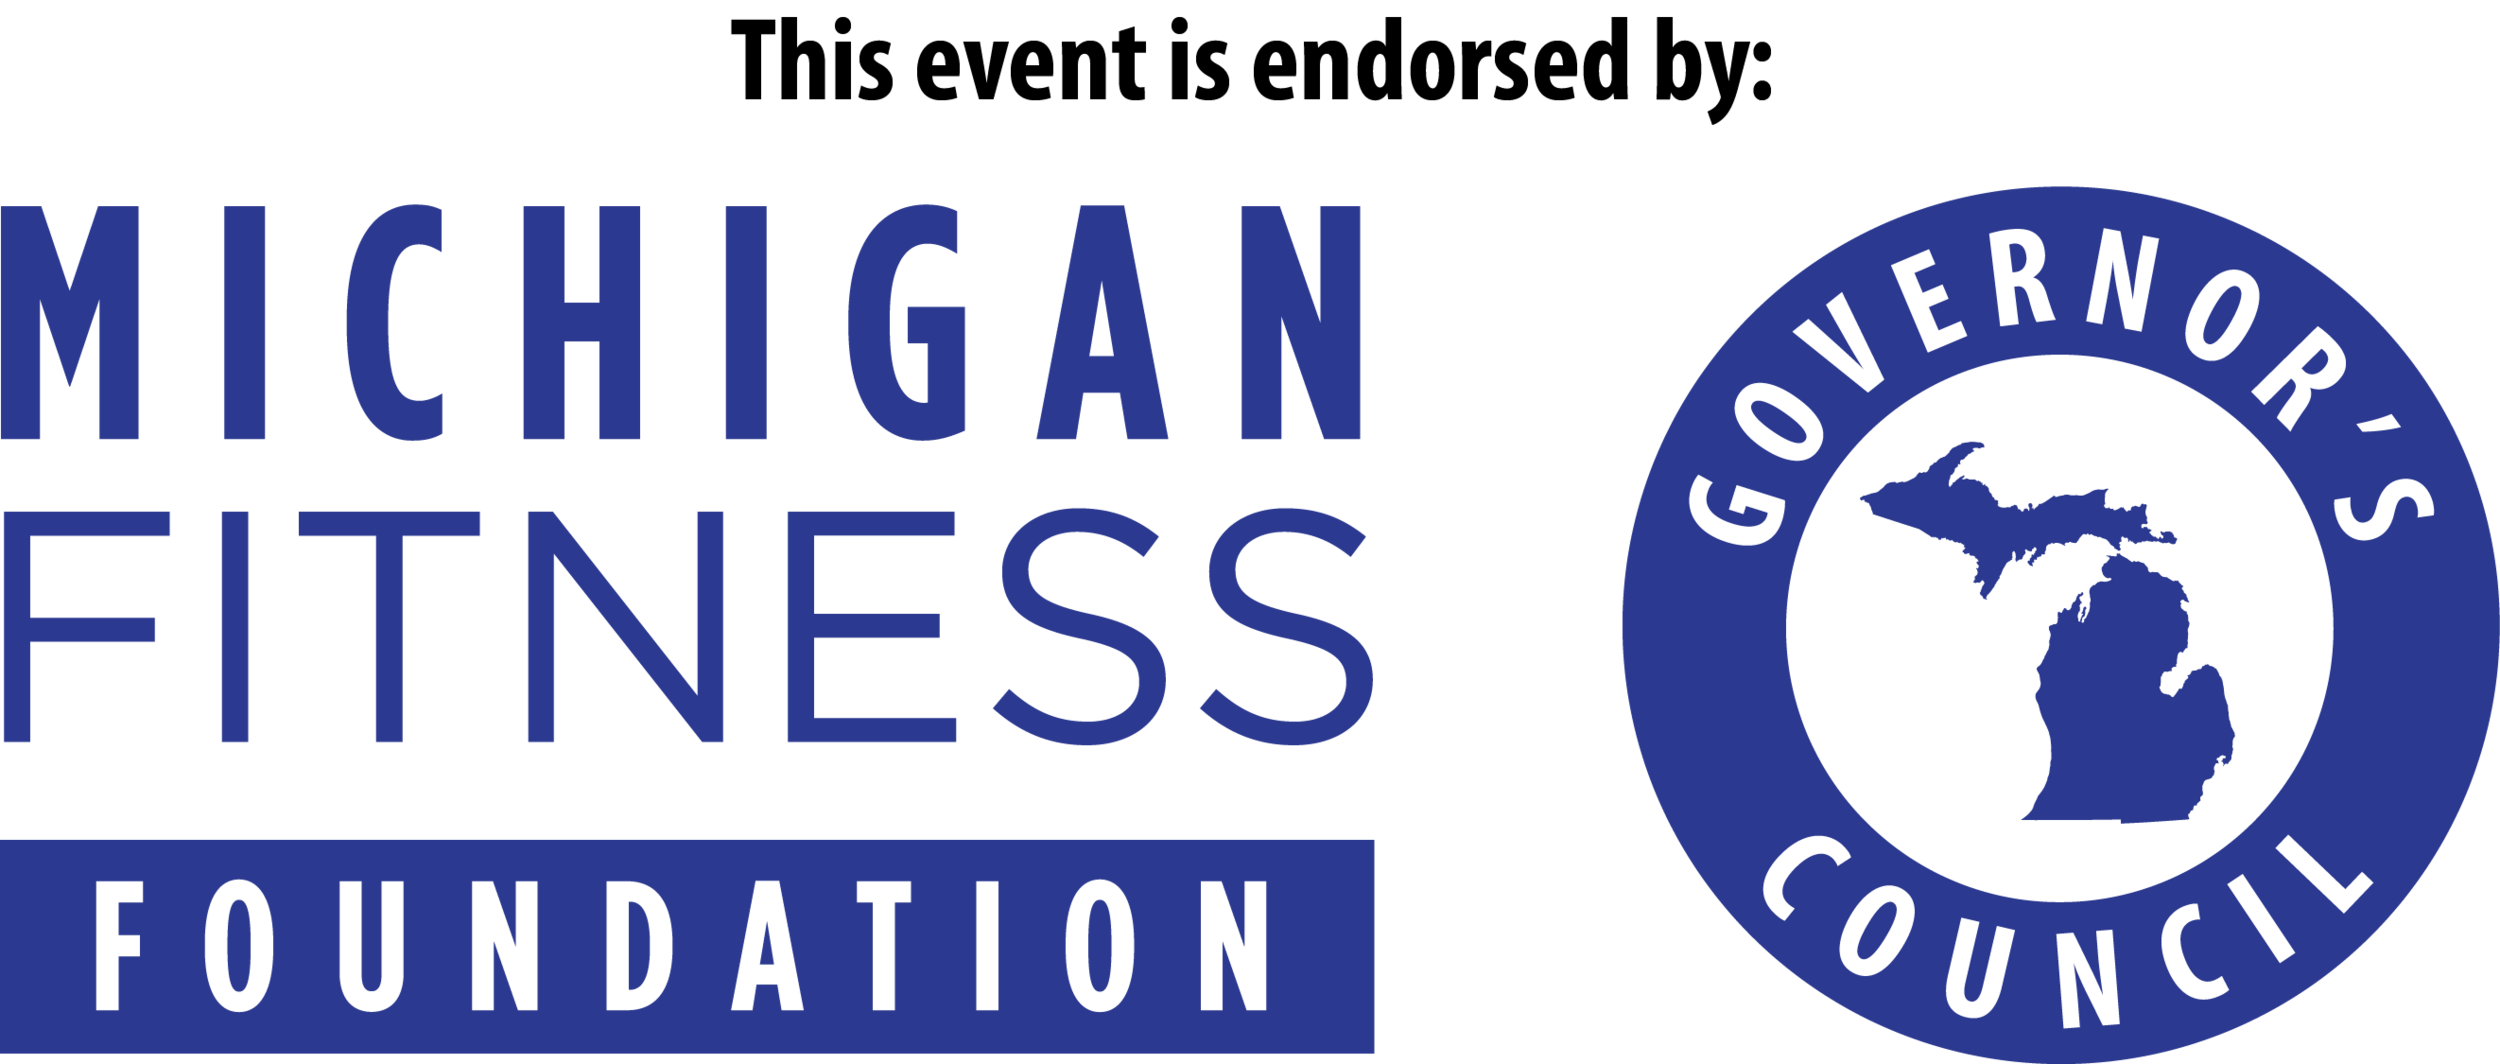 Michigan fitness foundation.png